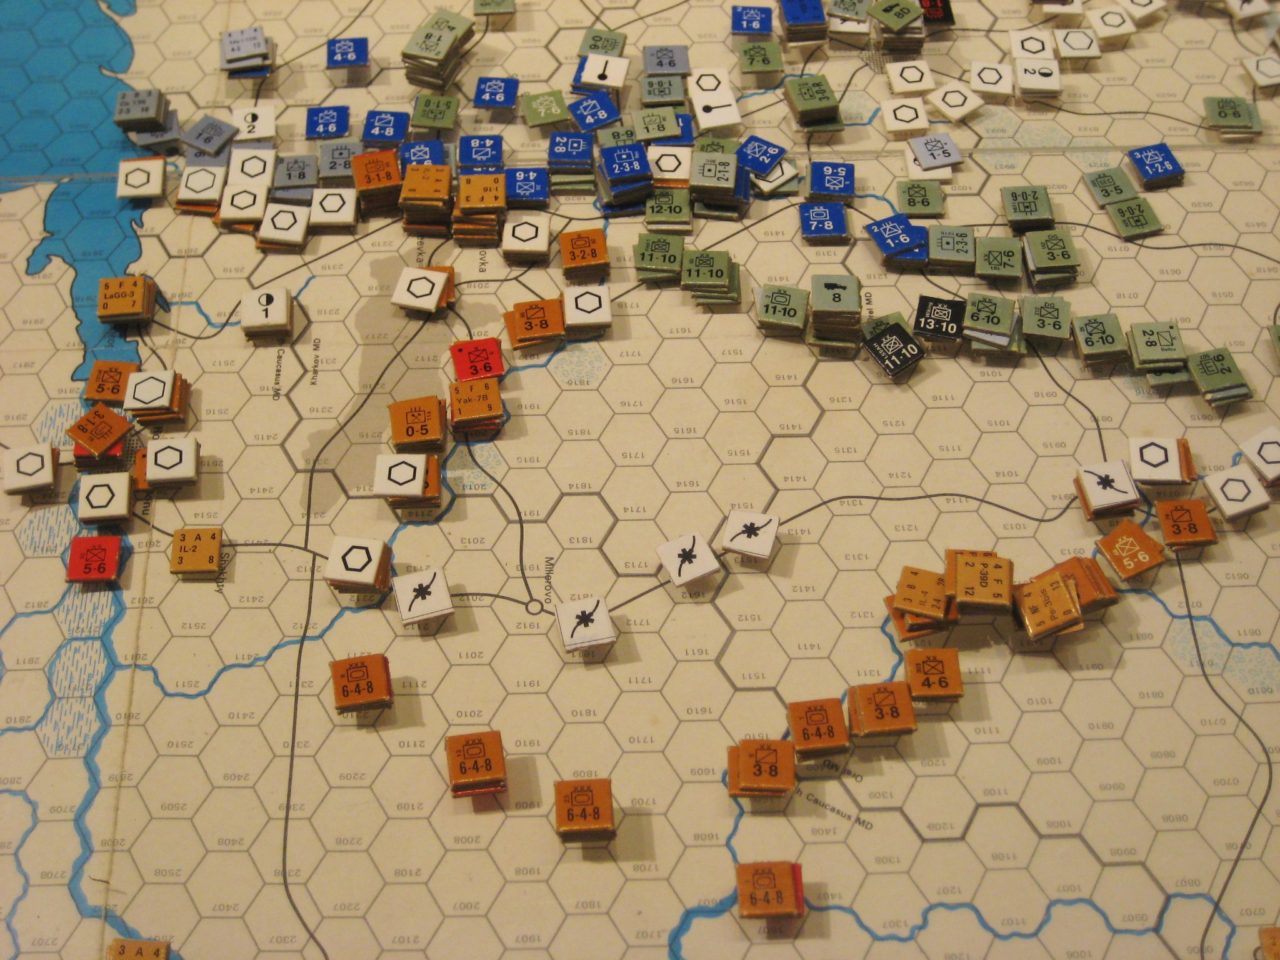 Jul I '42 - Soviets call retreat in the South, awaiting the Axis next move